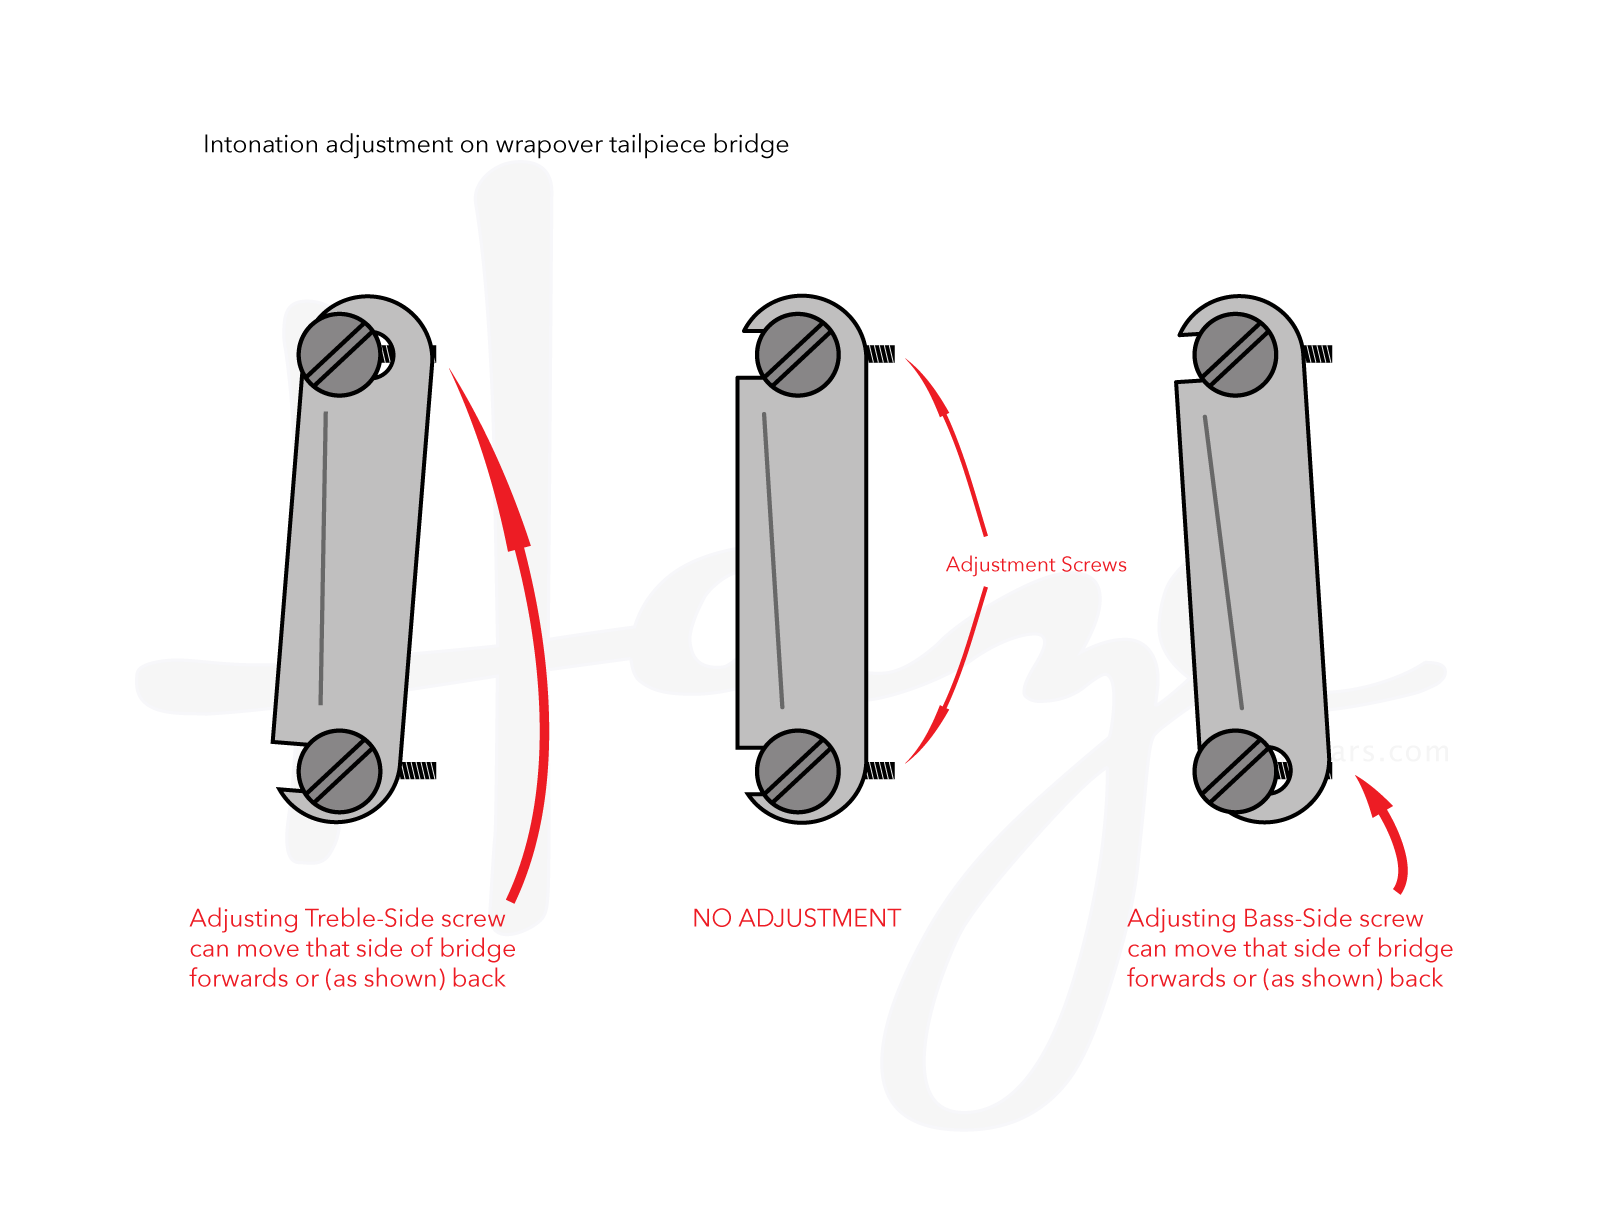 Adjusting 'grub' screws alters angle of bridge and therefore overall intonation.